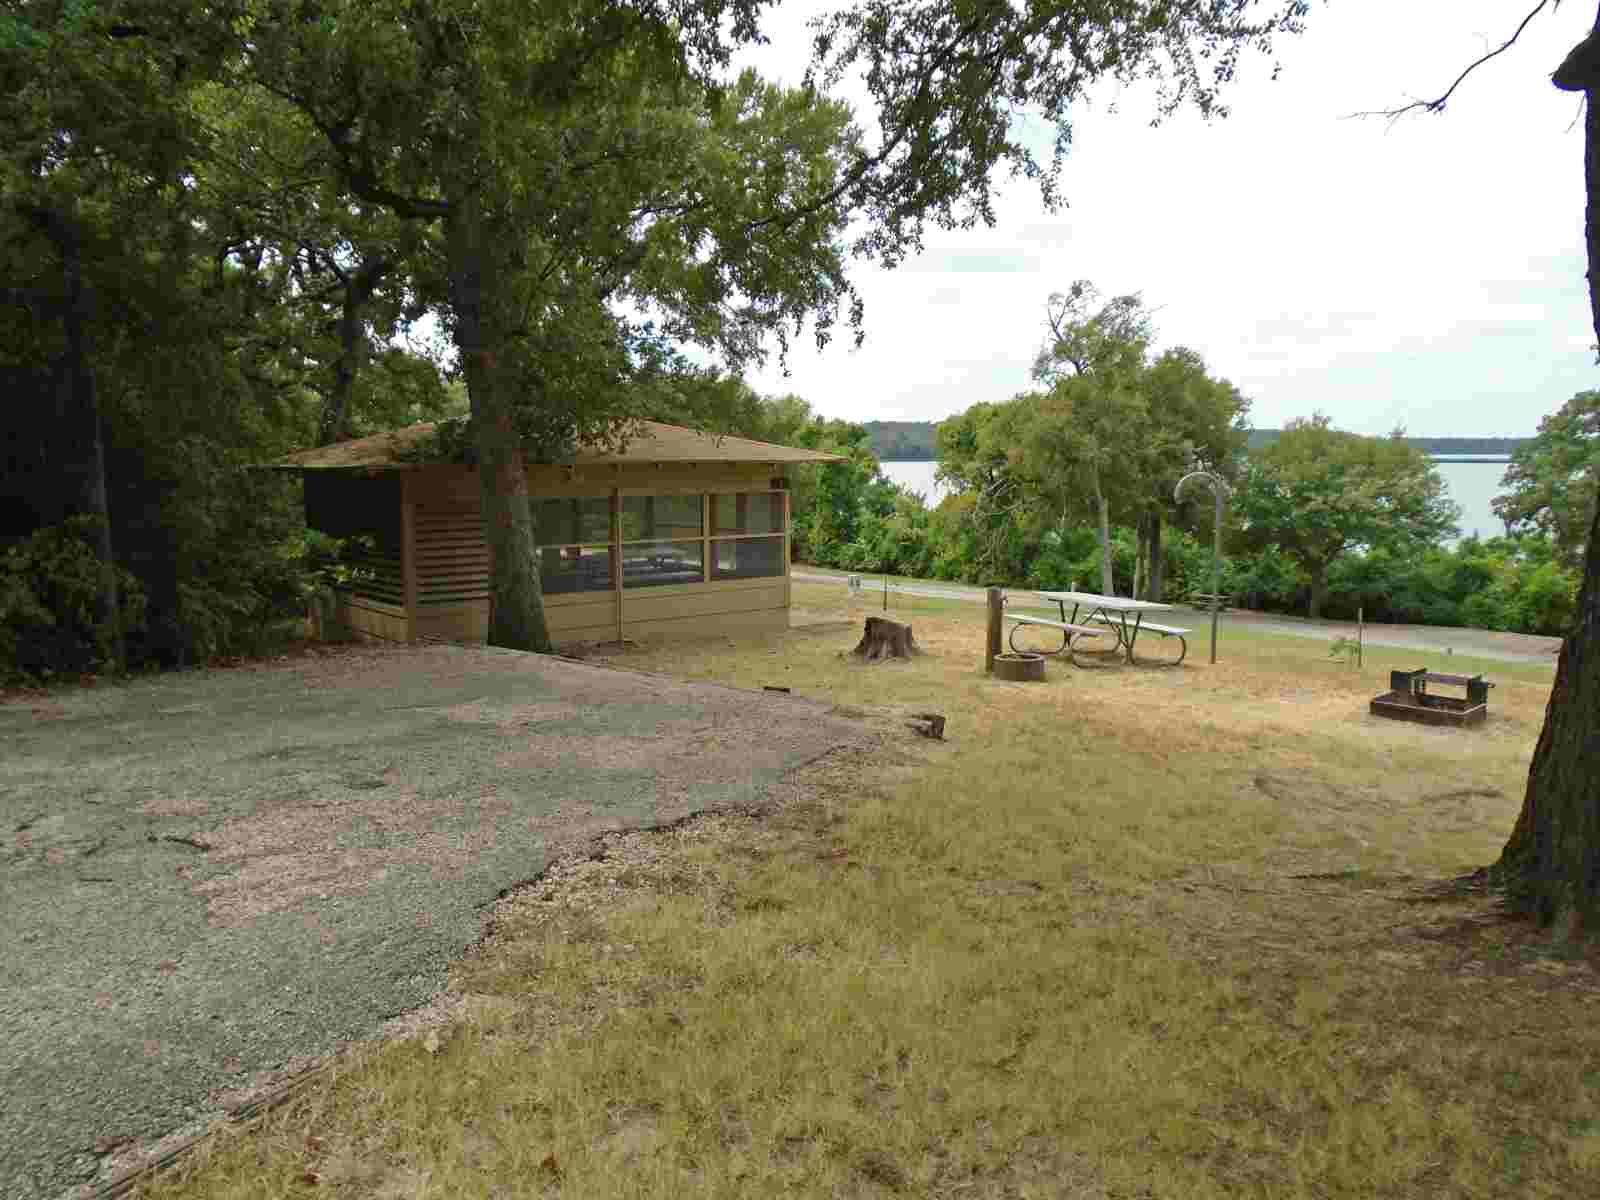 Fort Parker State Park Screened Shelters Texas Parks  1600 x 1200 jpeg ft-parker-screened-shelters1600p-1-e.jpg